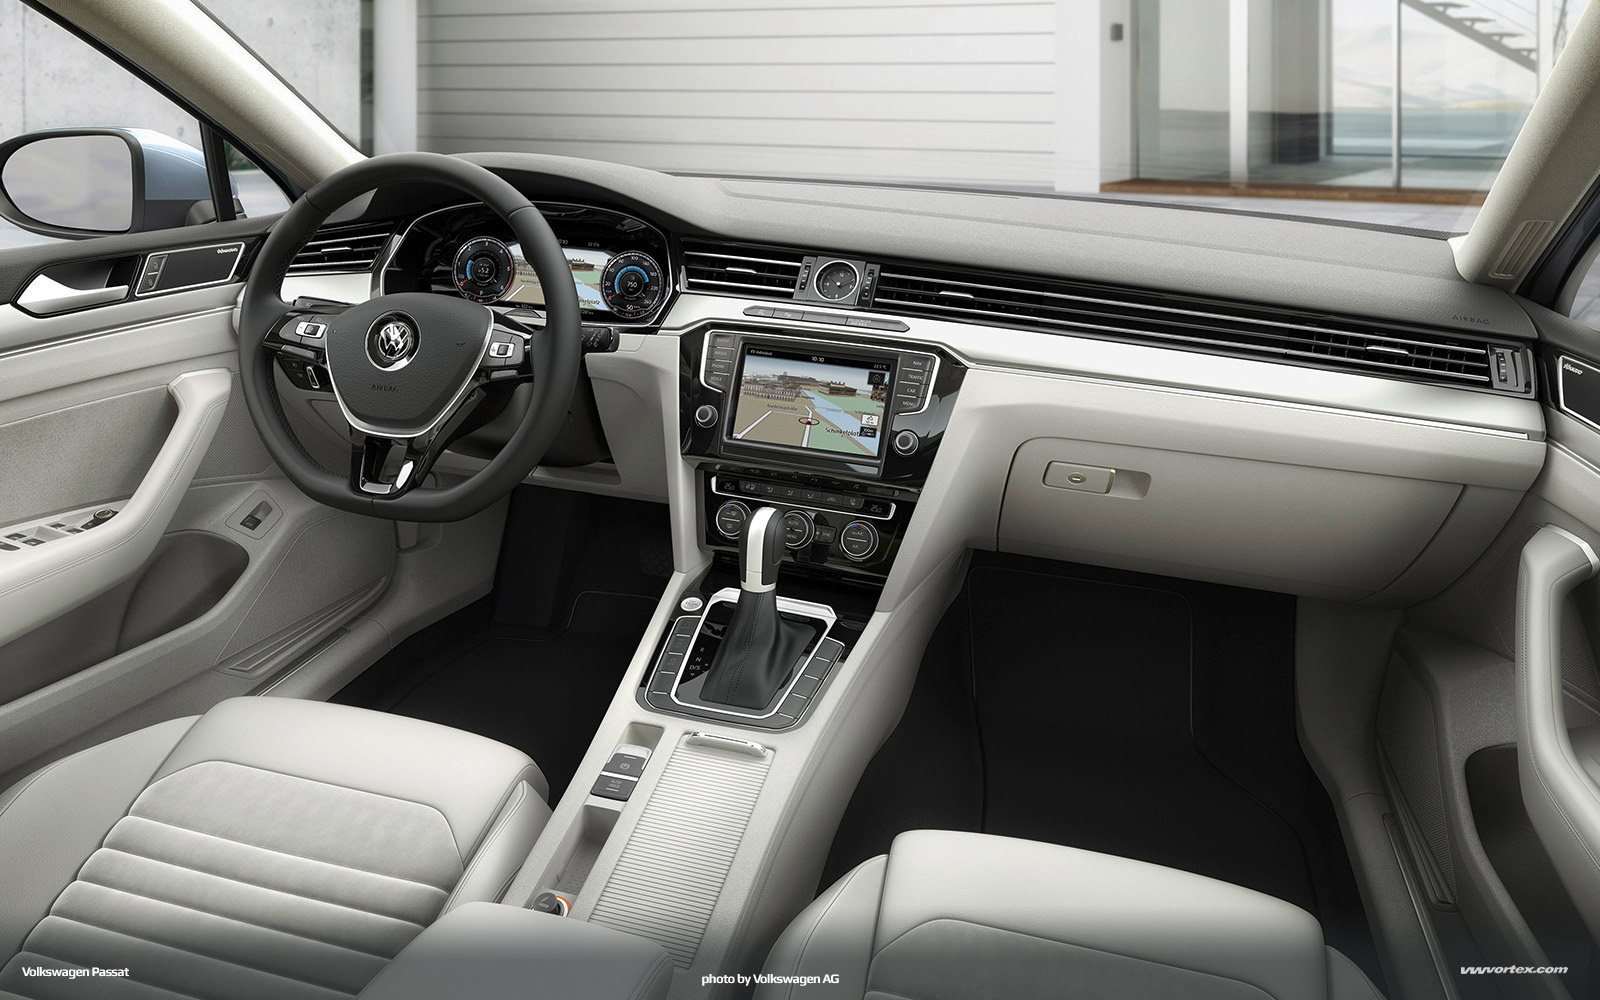 Volkswagen unveils Passat with latest assistance